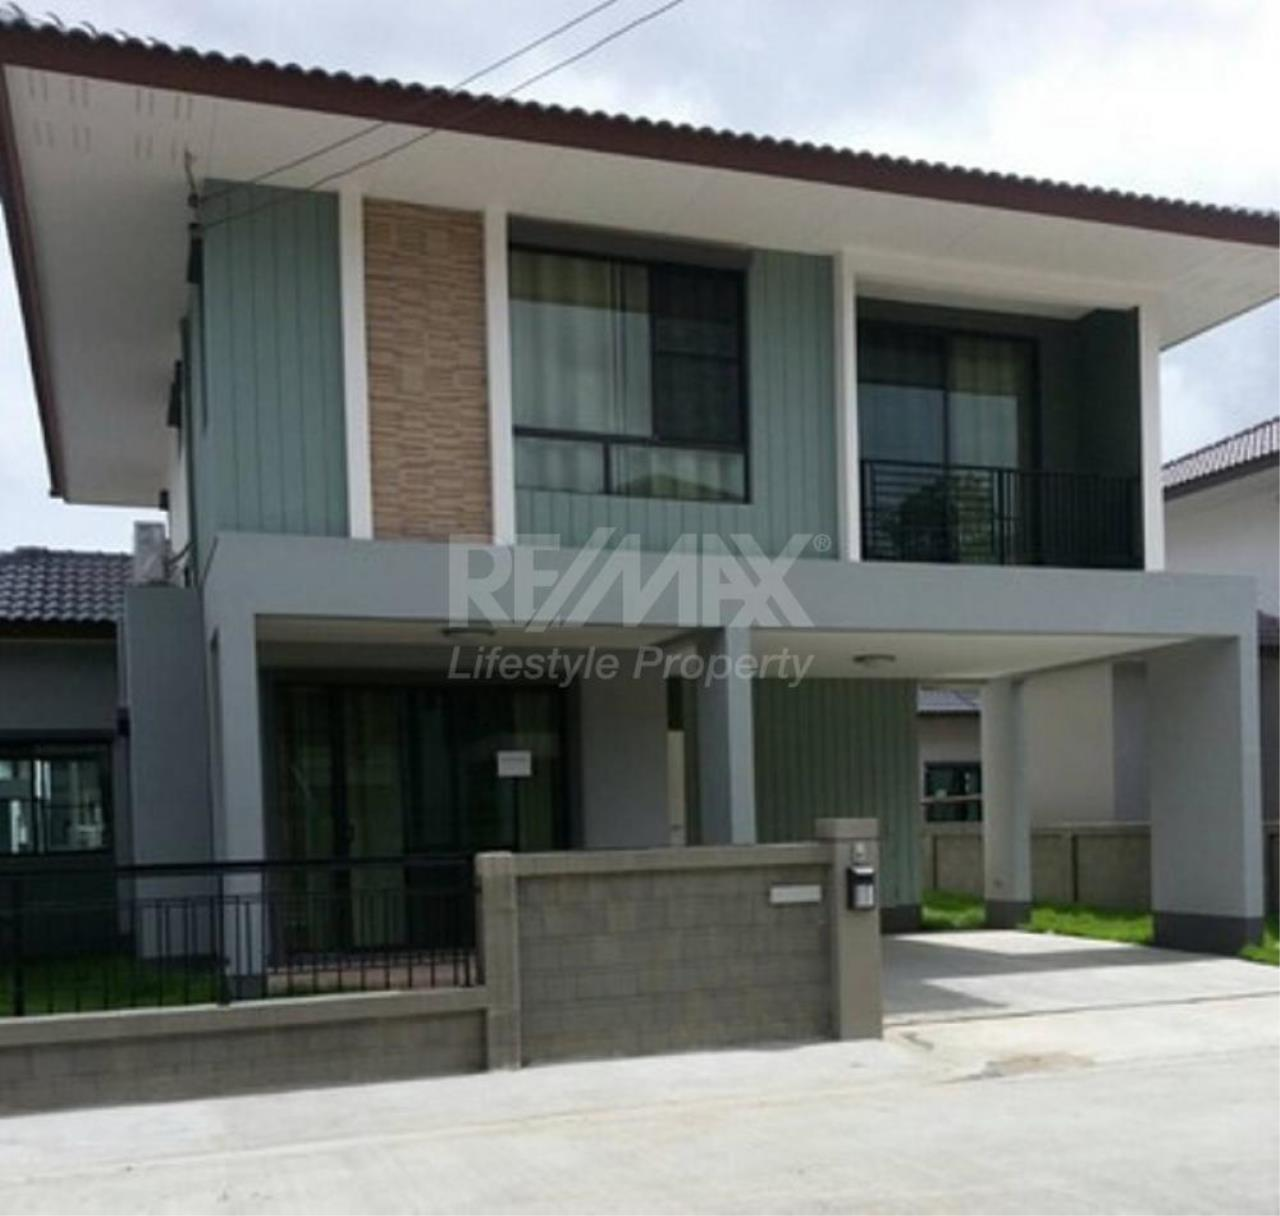 RE/MAX LifeStyle Property Agency's House Suvarnabhumi 2